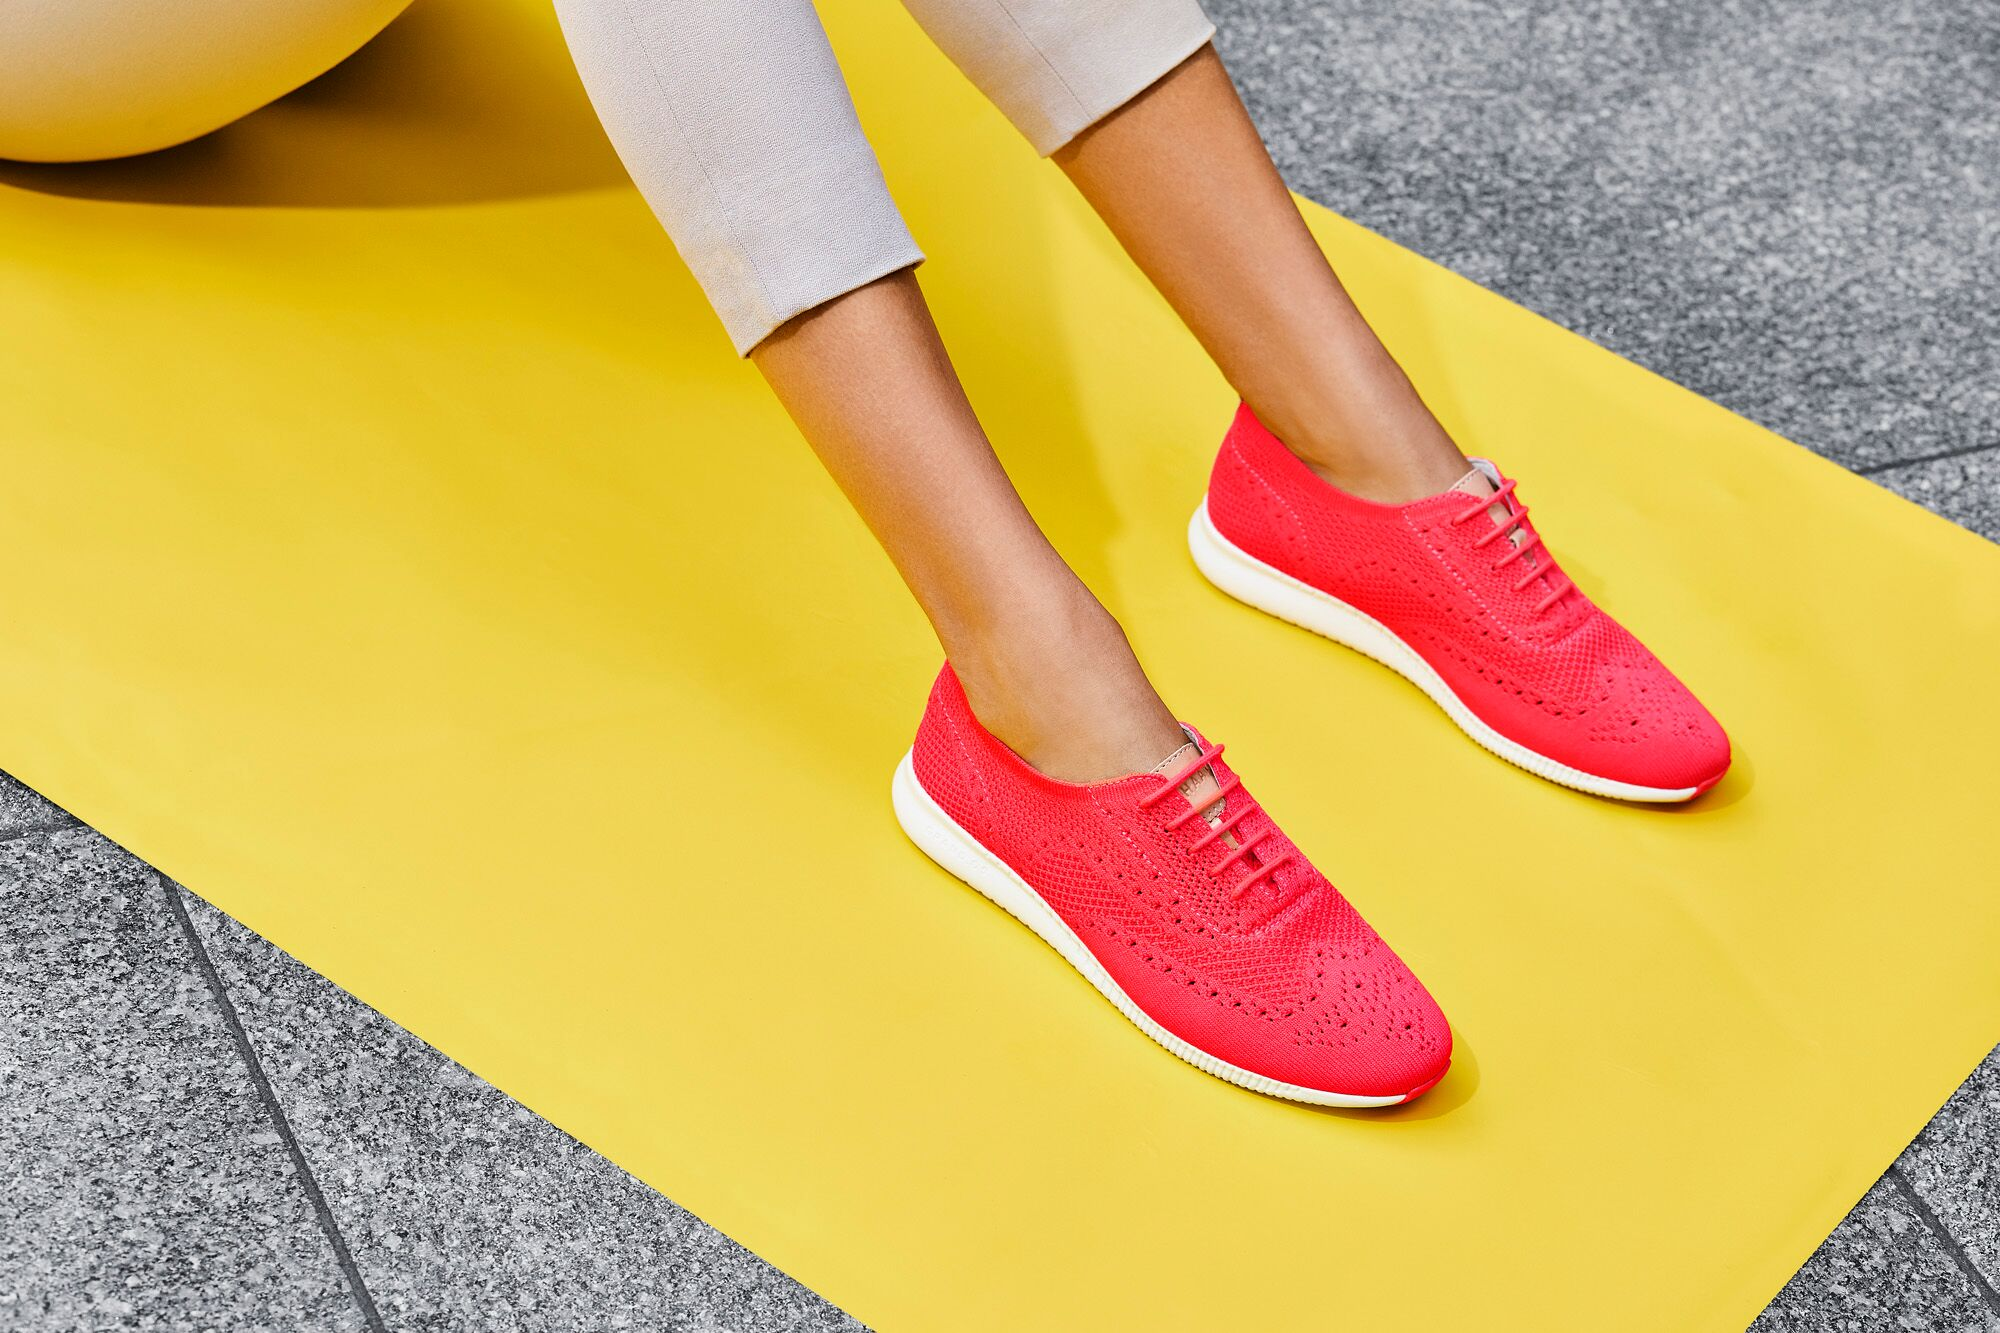 The Best New Women's Shoes for Travel 2018